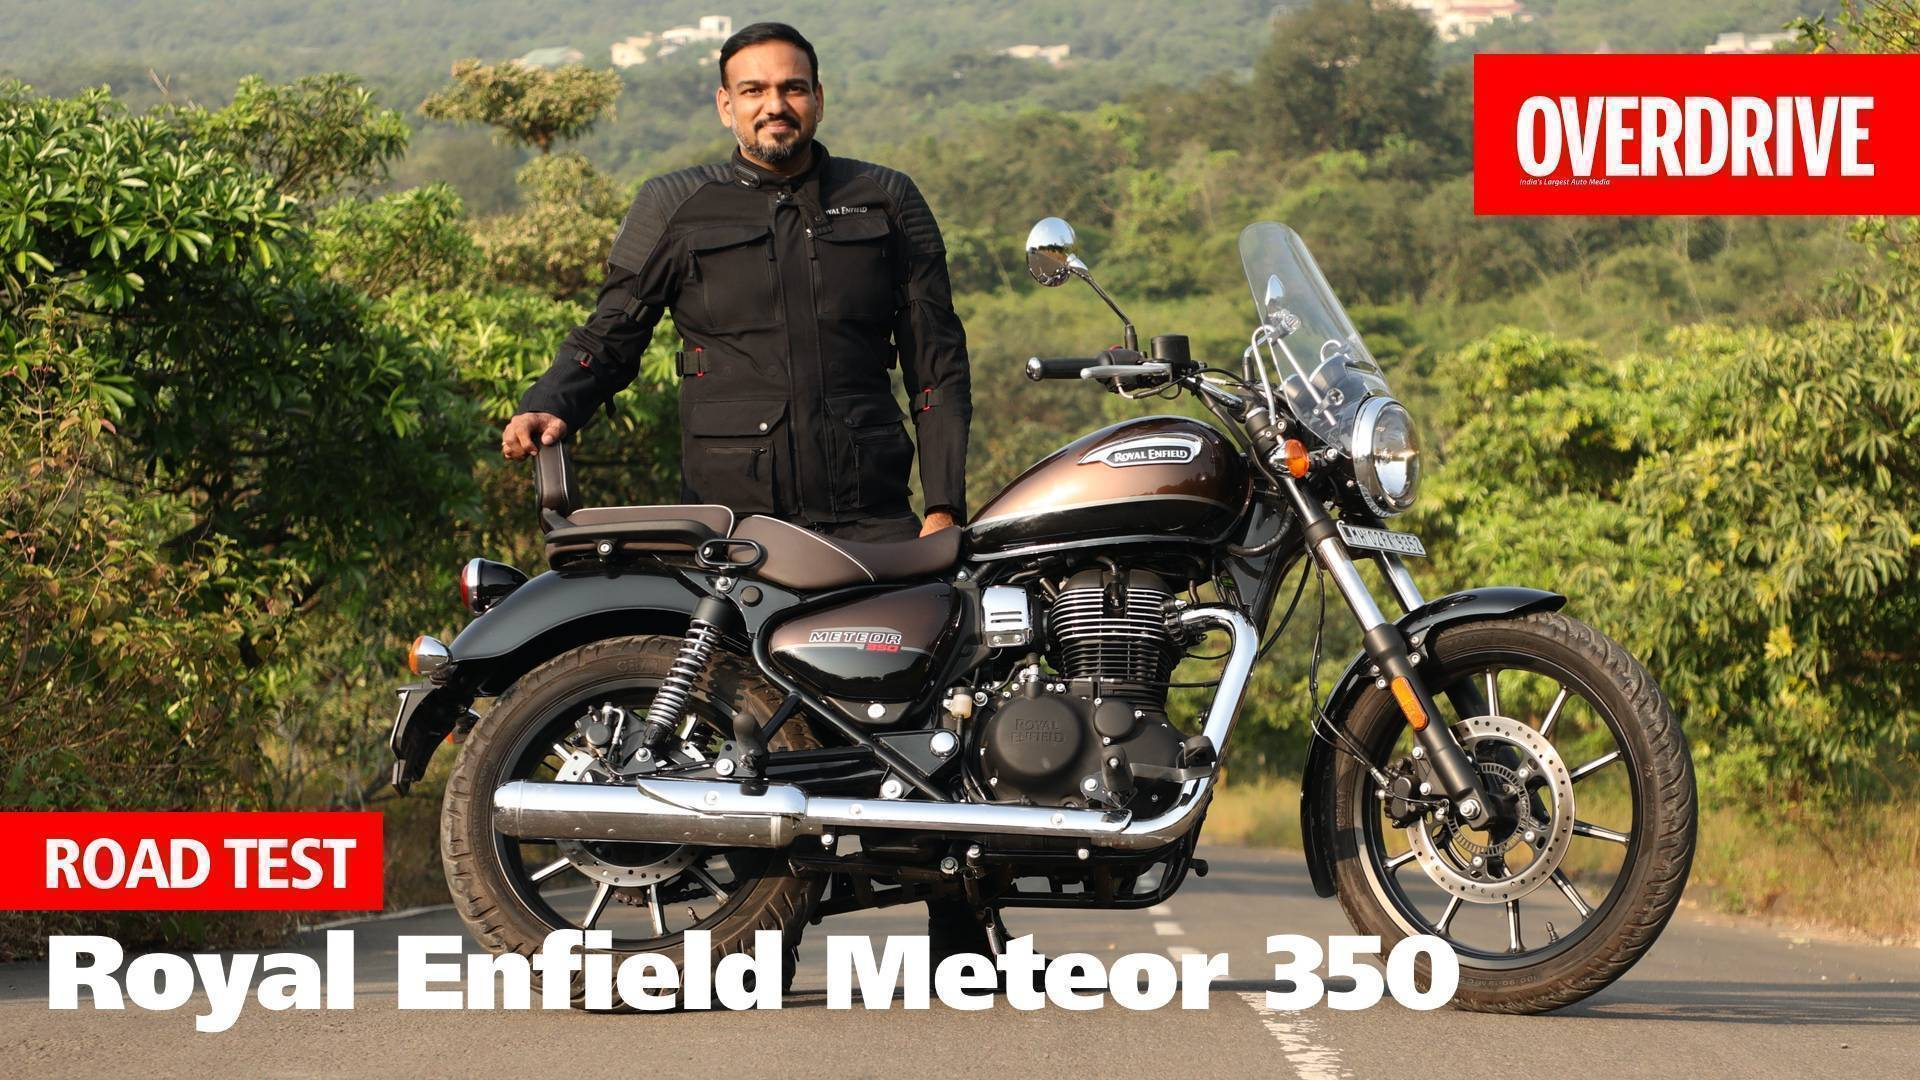 Royal Enfield Meteor 350 road test review - promises more than just a new cruiser! - Video